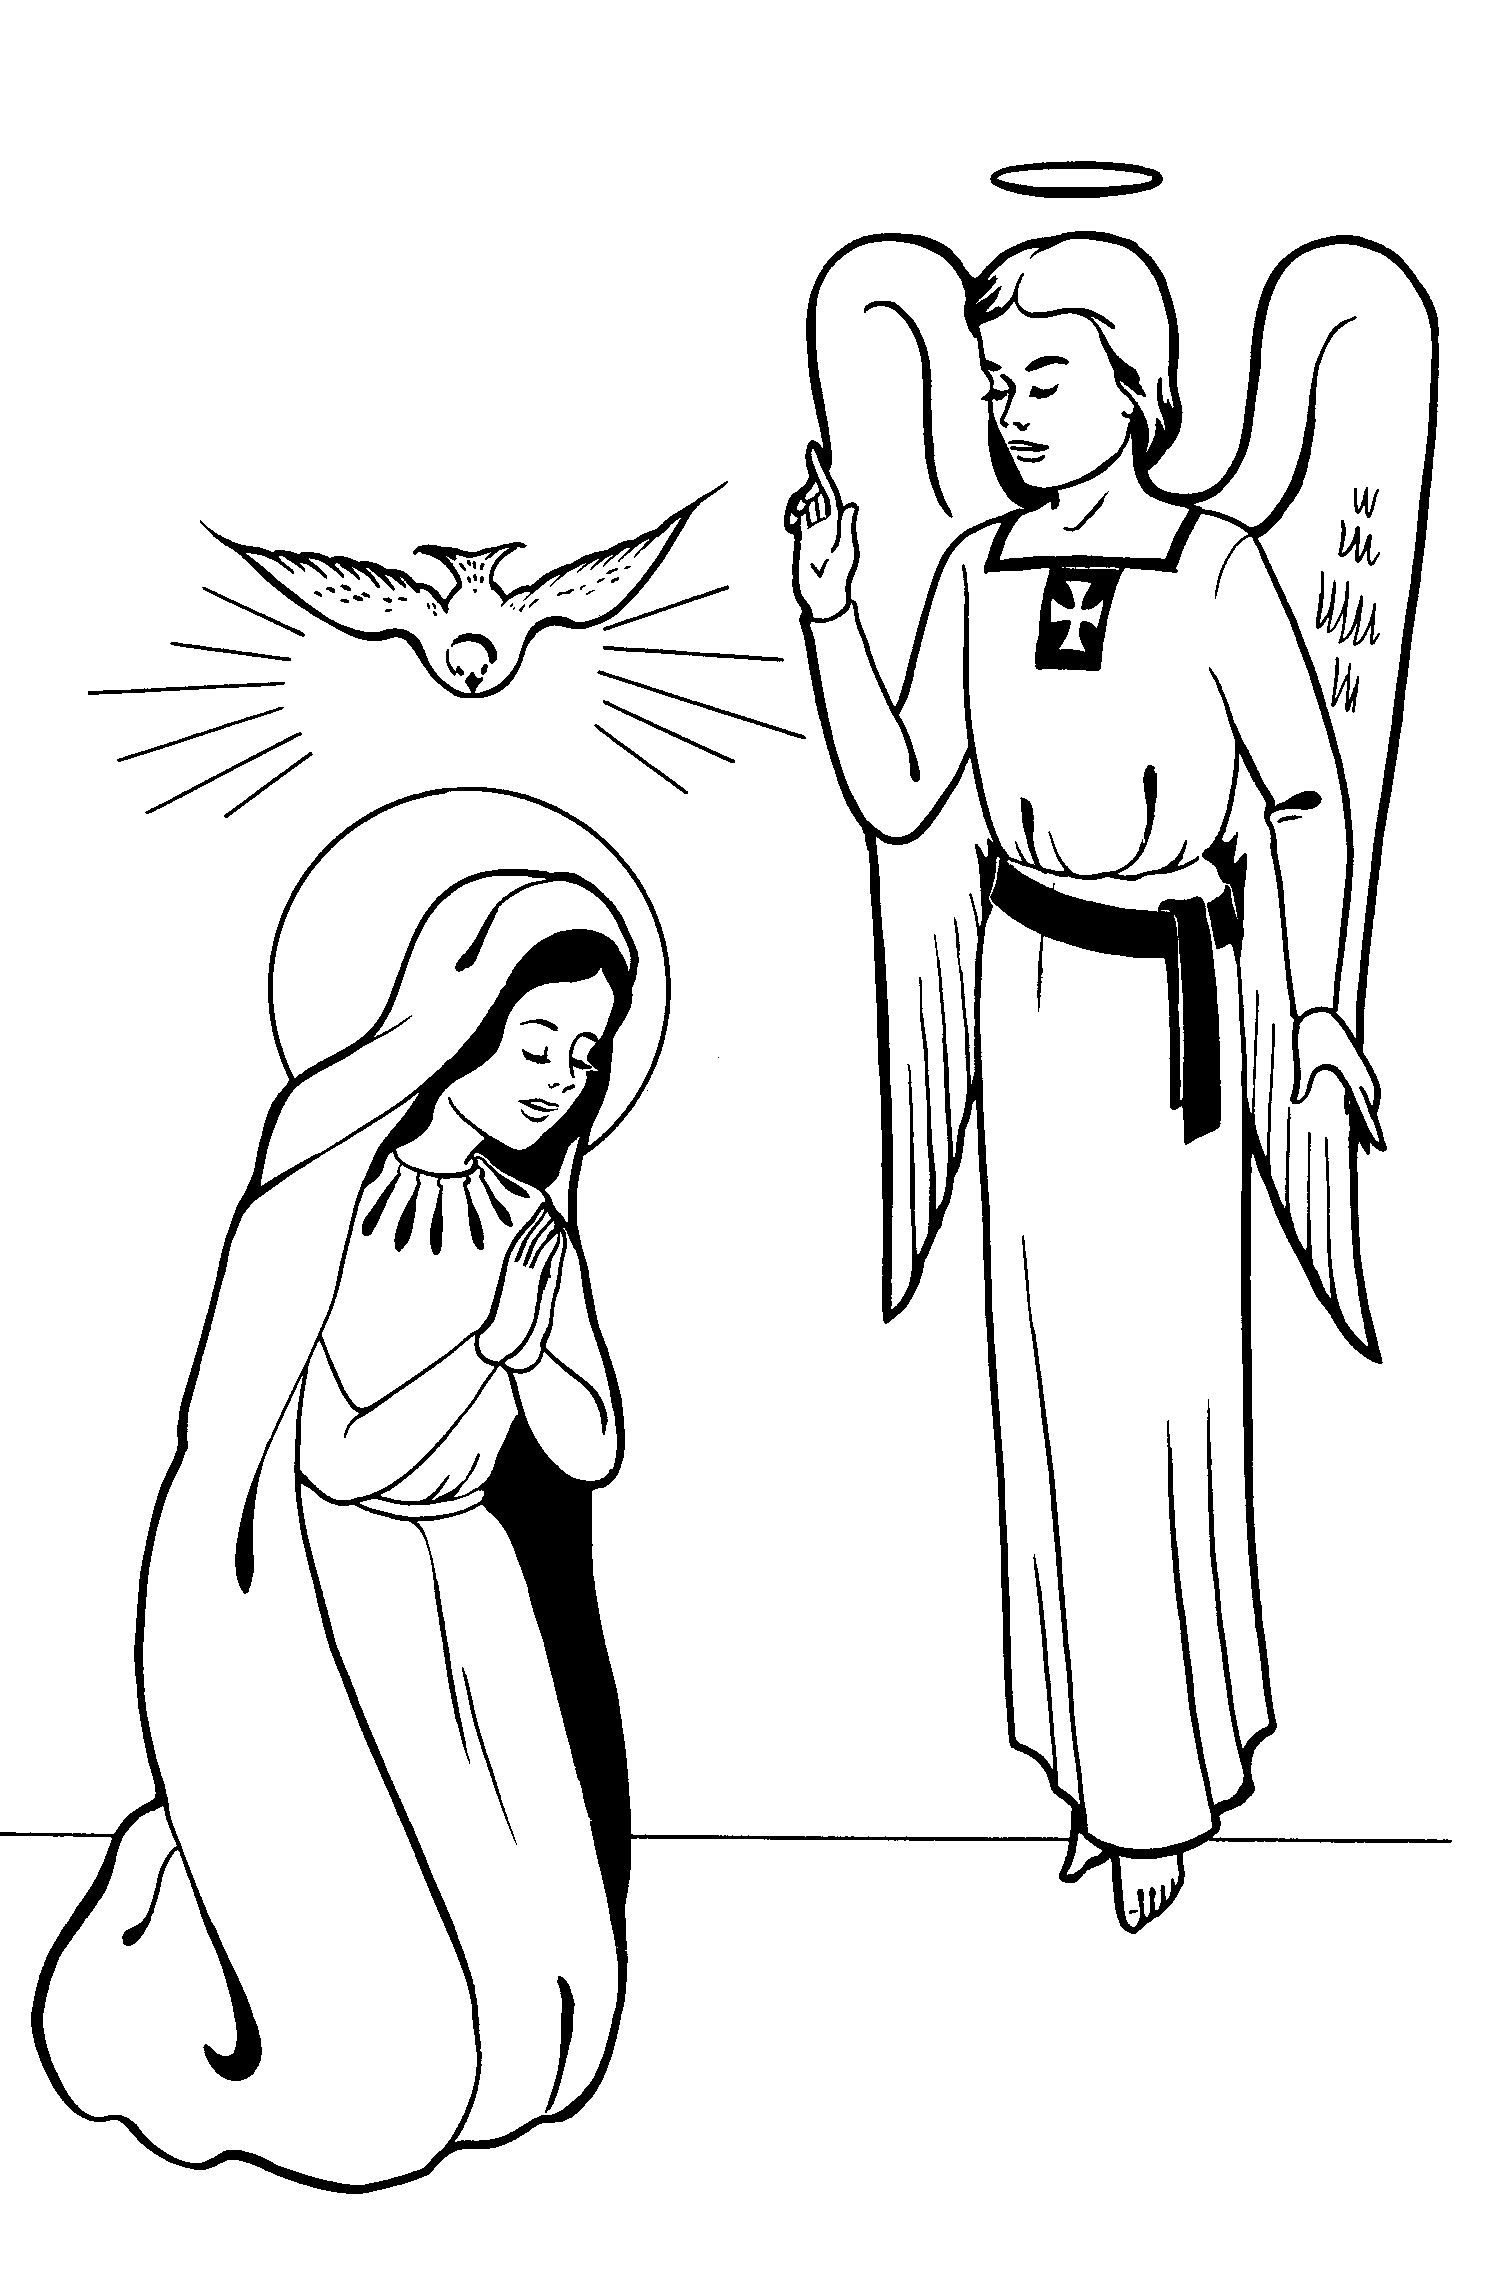 Printable coloring pages virgin mary - Mary Coloring Pages Printable